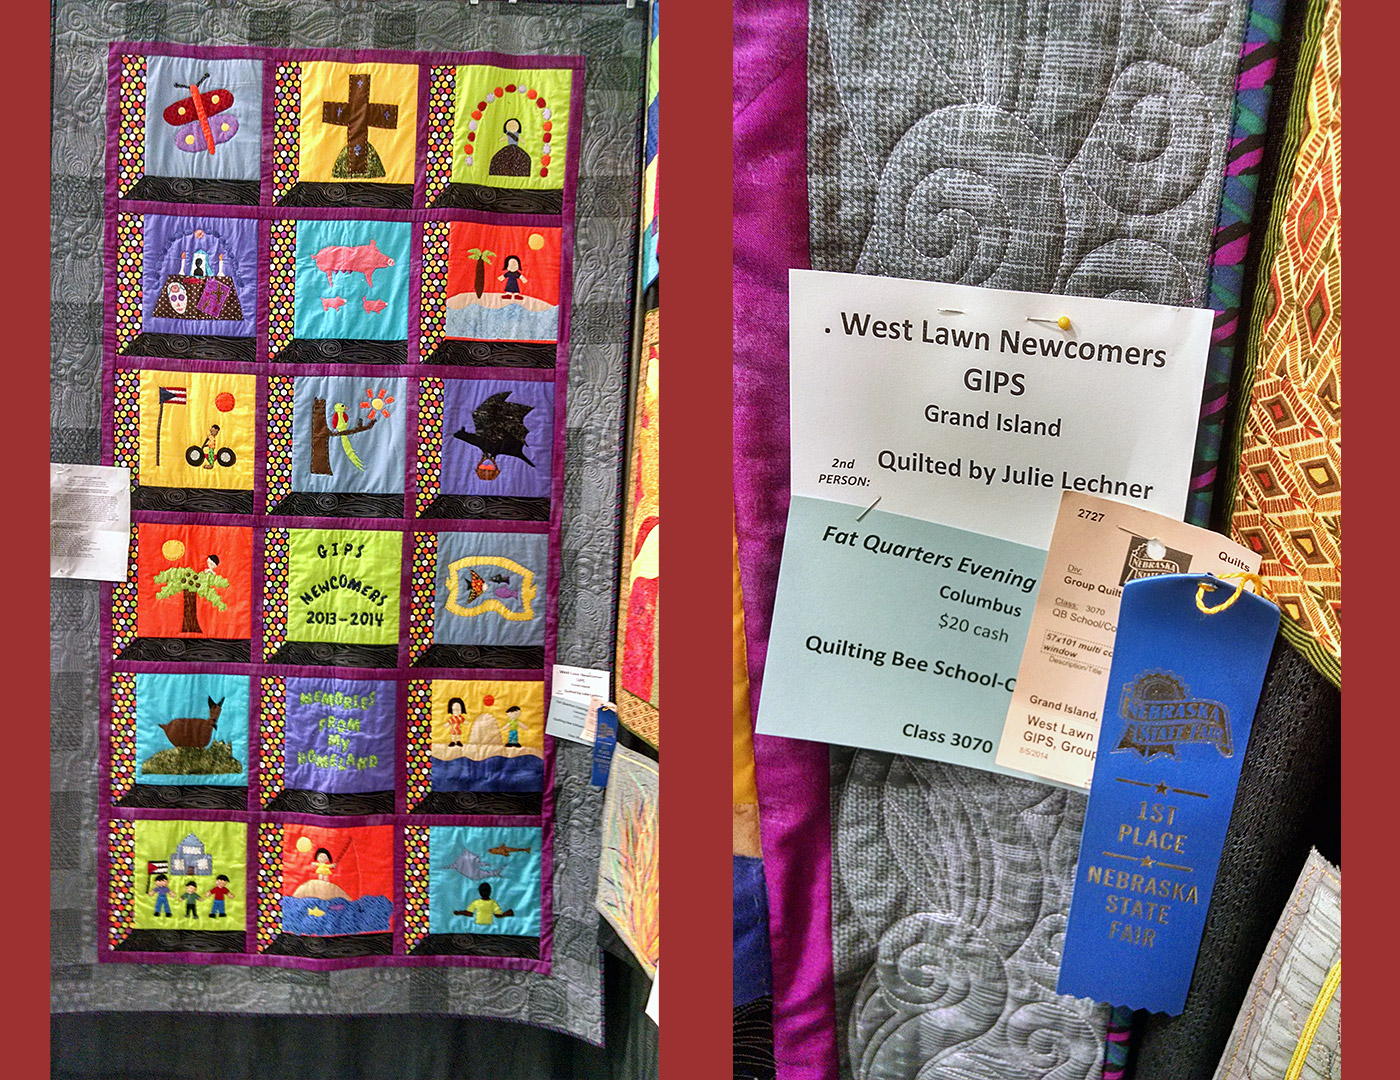 2013-2014 Newcomers Quilt & Nebraska State Fair First Place Blue Ribbon. Courtesy Tracy Morrow